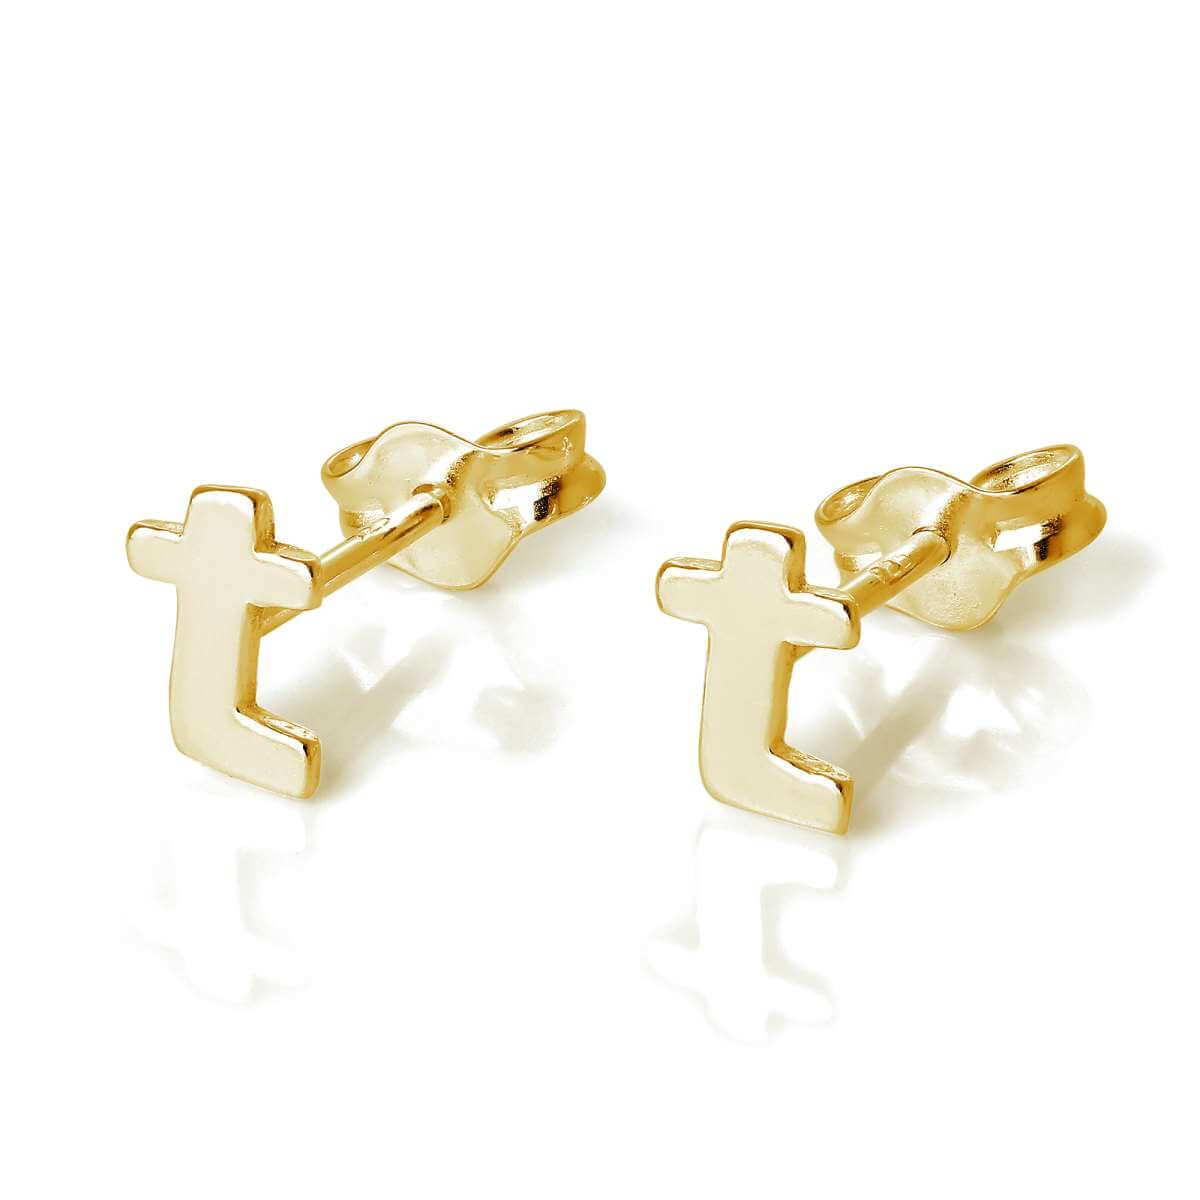 Gold Plated Sterling Silver Alphabet Letter T Stud Earrings